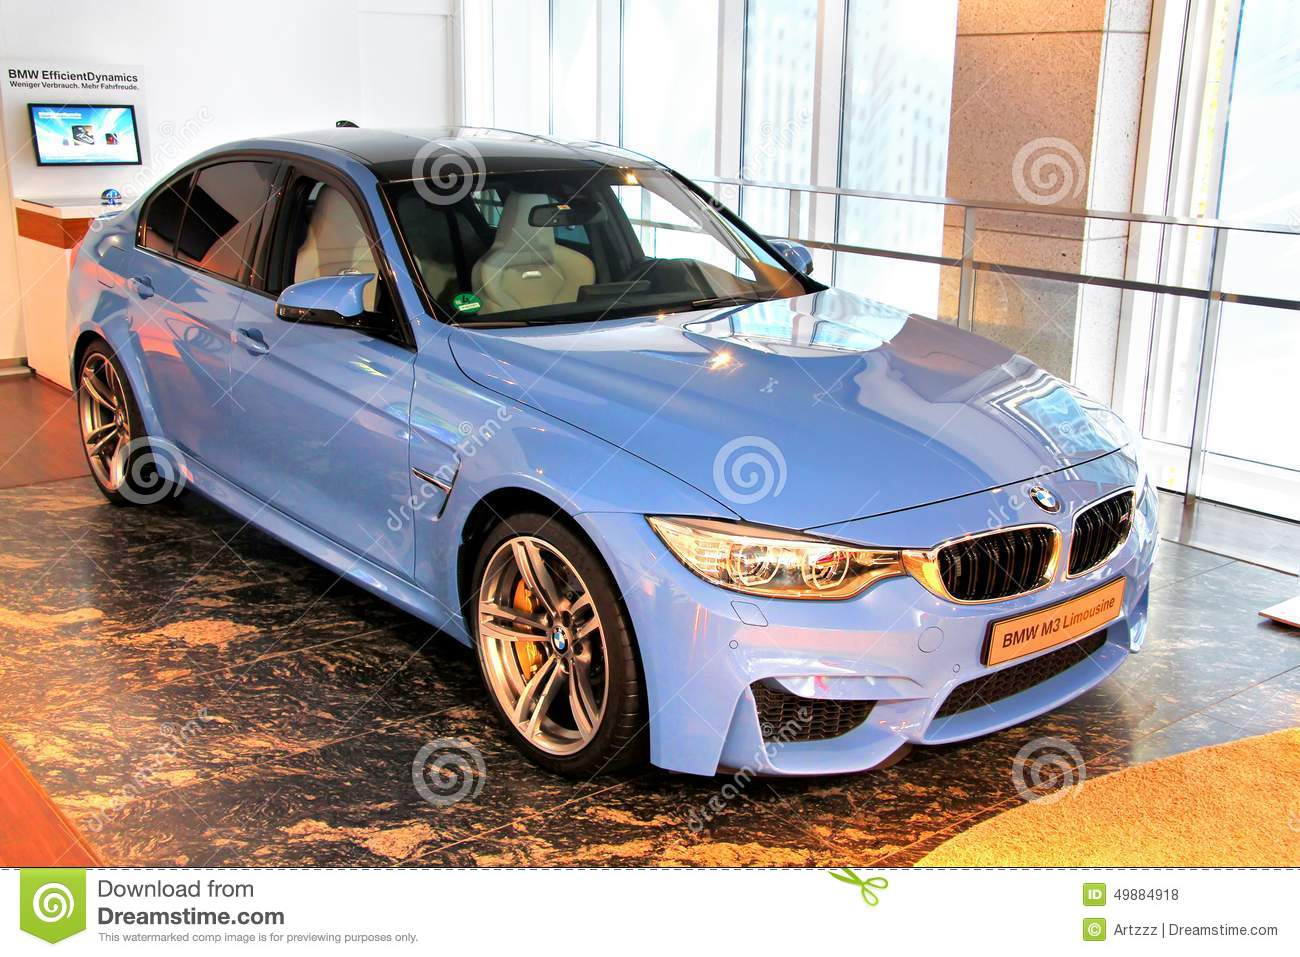 Bmw F80 M3 Editorial Stock Photo Image Of Show Cyan 49884918